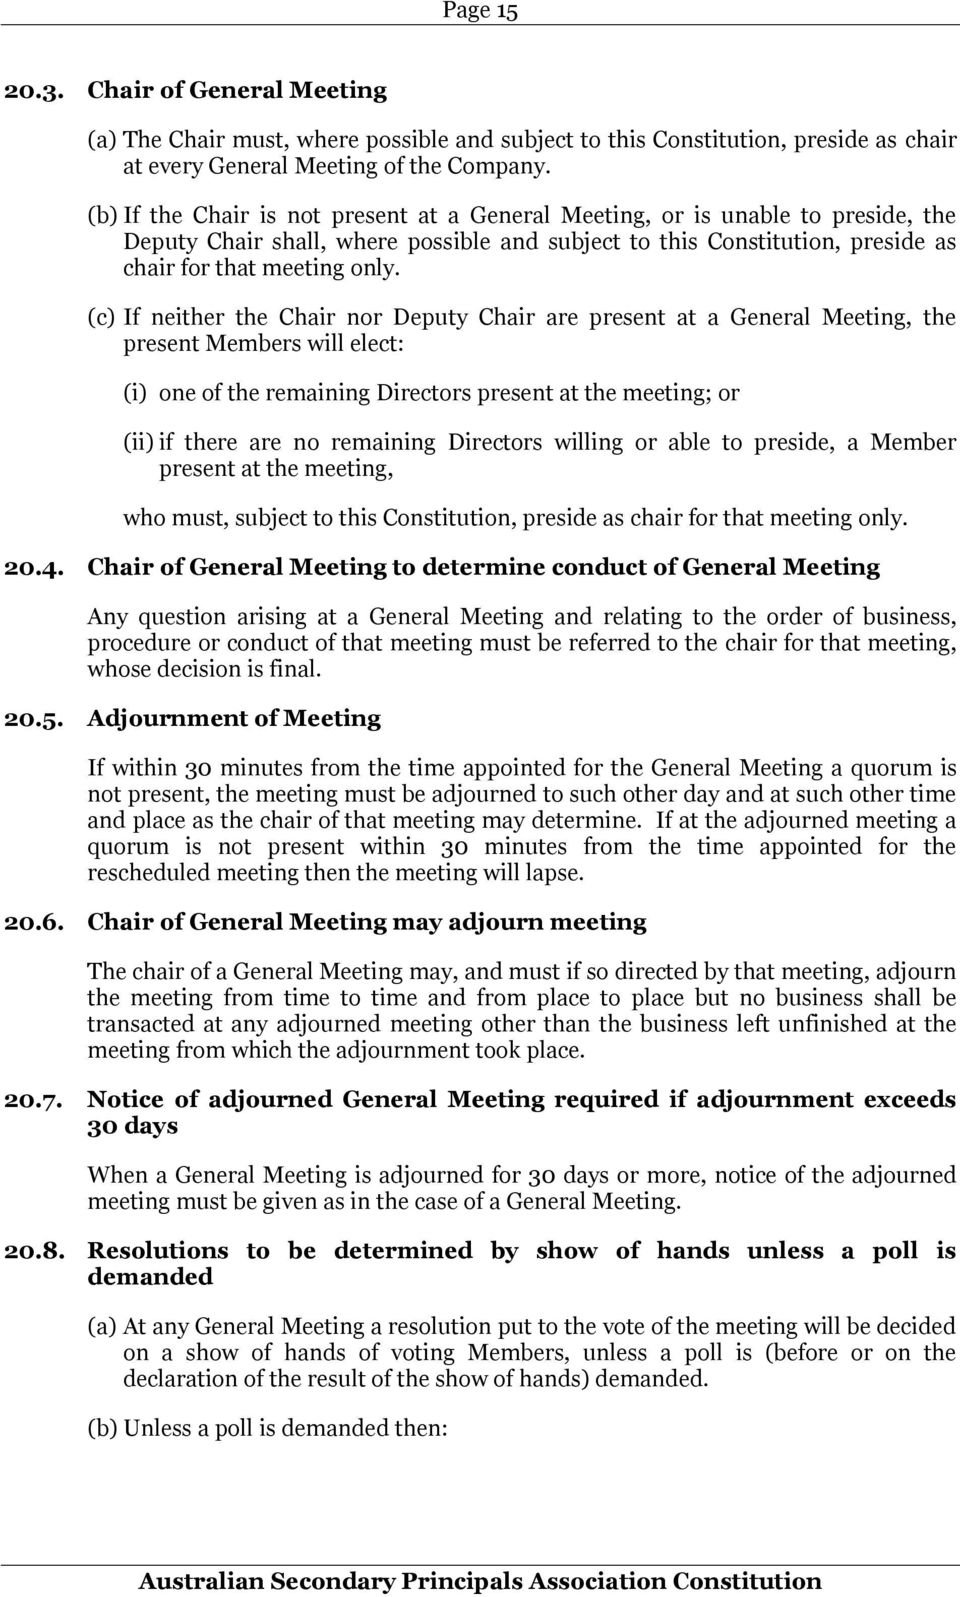 (c) If neither the Chair nor Deputy Chair are present at a General Meeting, the present Members will elect: (i) one of the remaining Directors present at the meeting; or (ii) if there are no